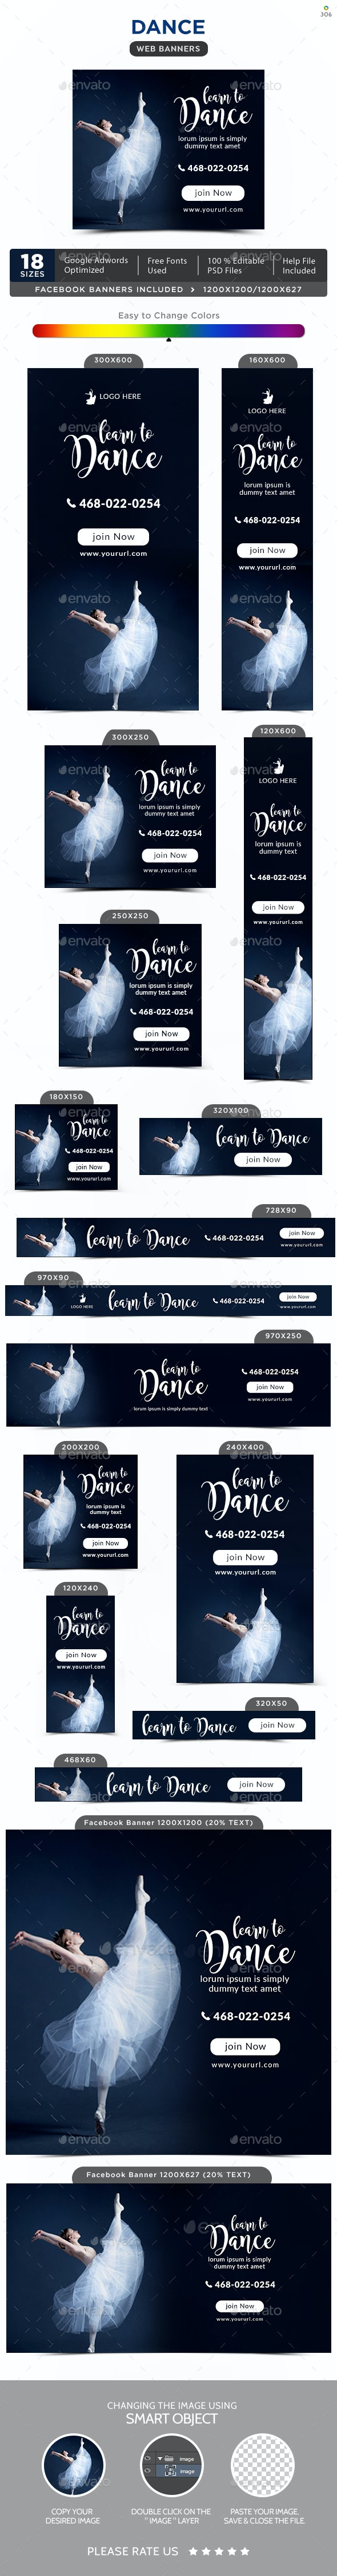 Dance Banners - Banners & Ads Web Elements